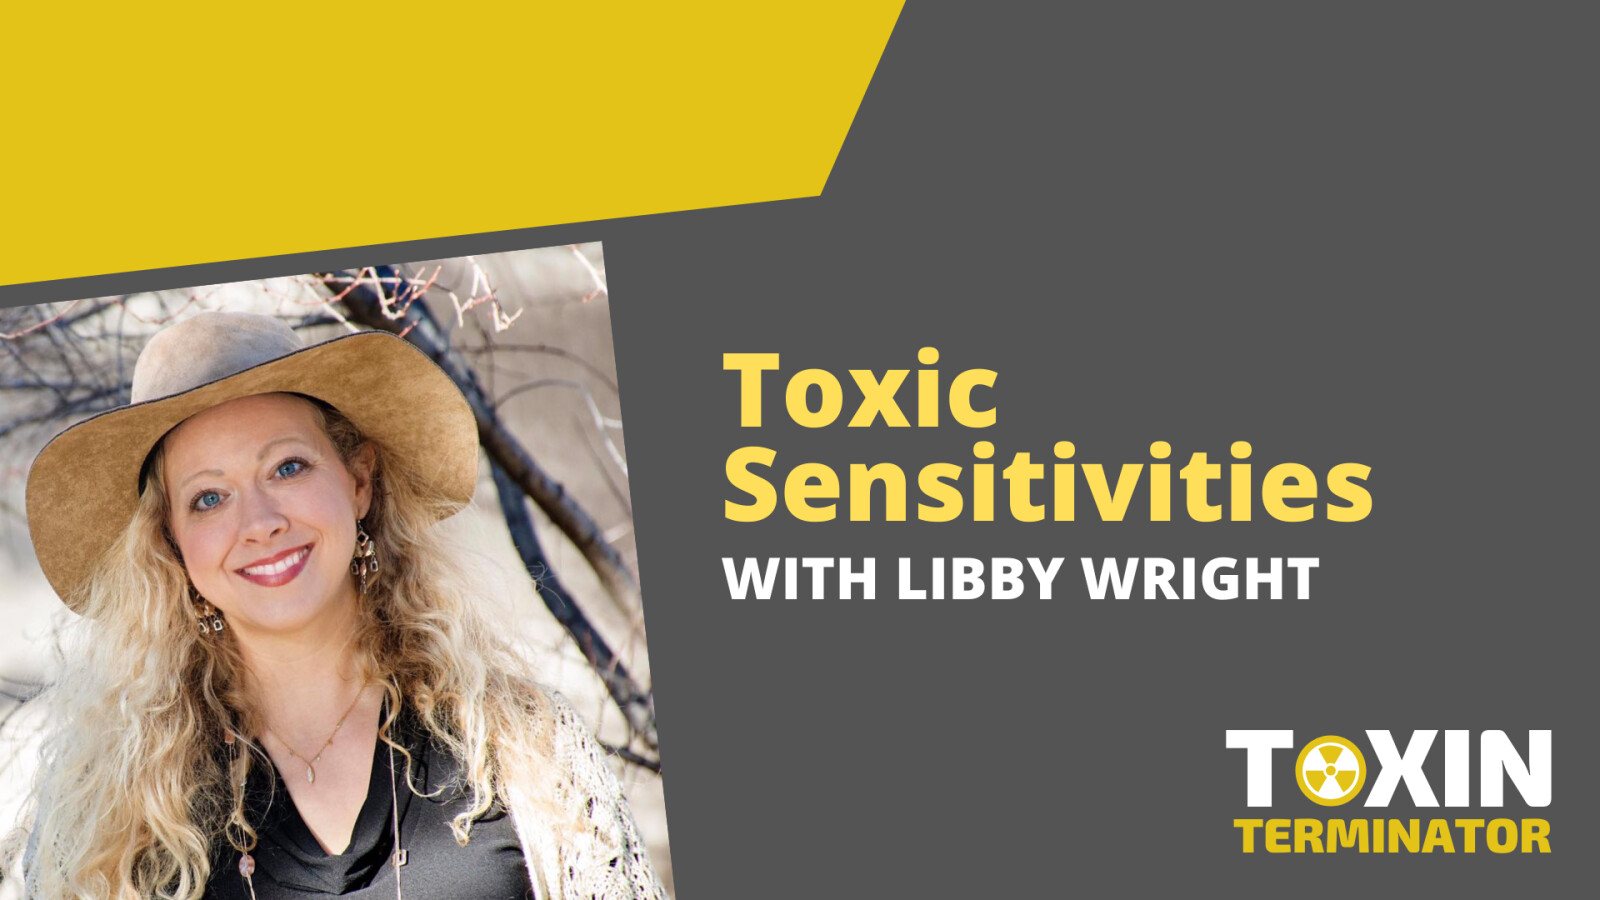 Toxic Sensitivities with Libby Wright